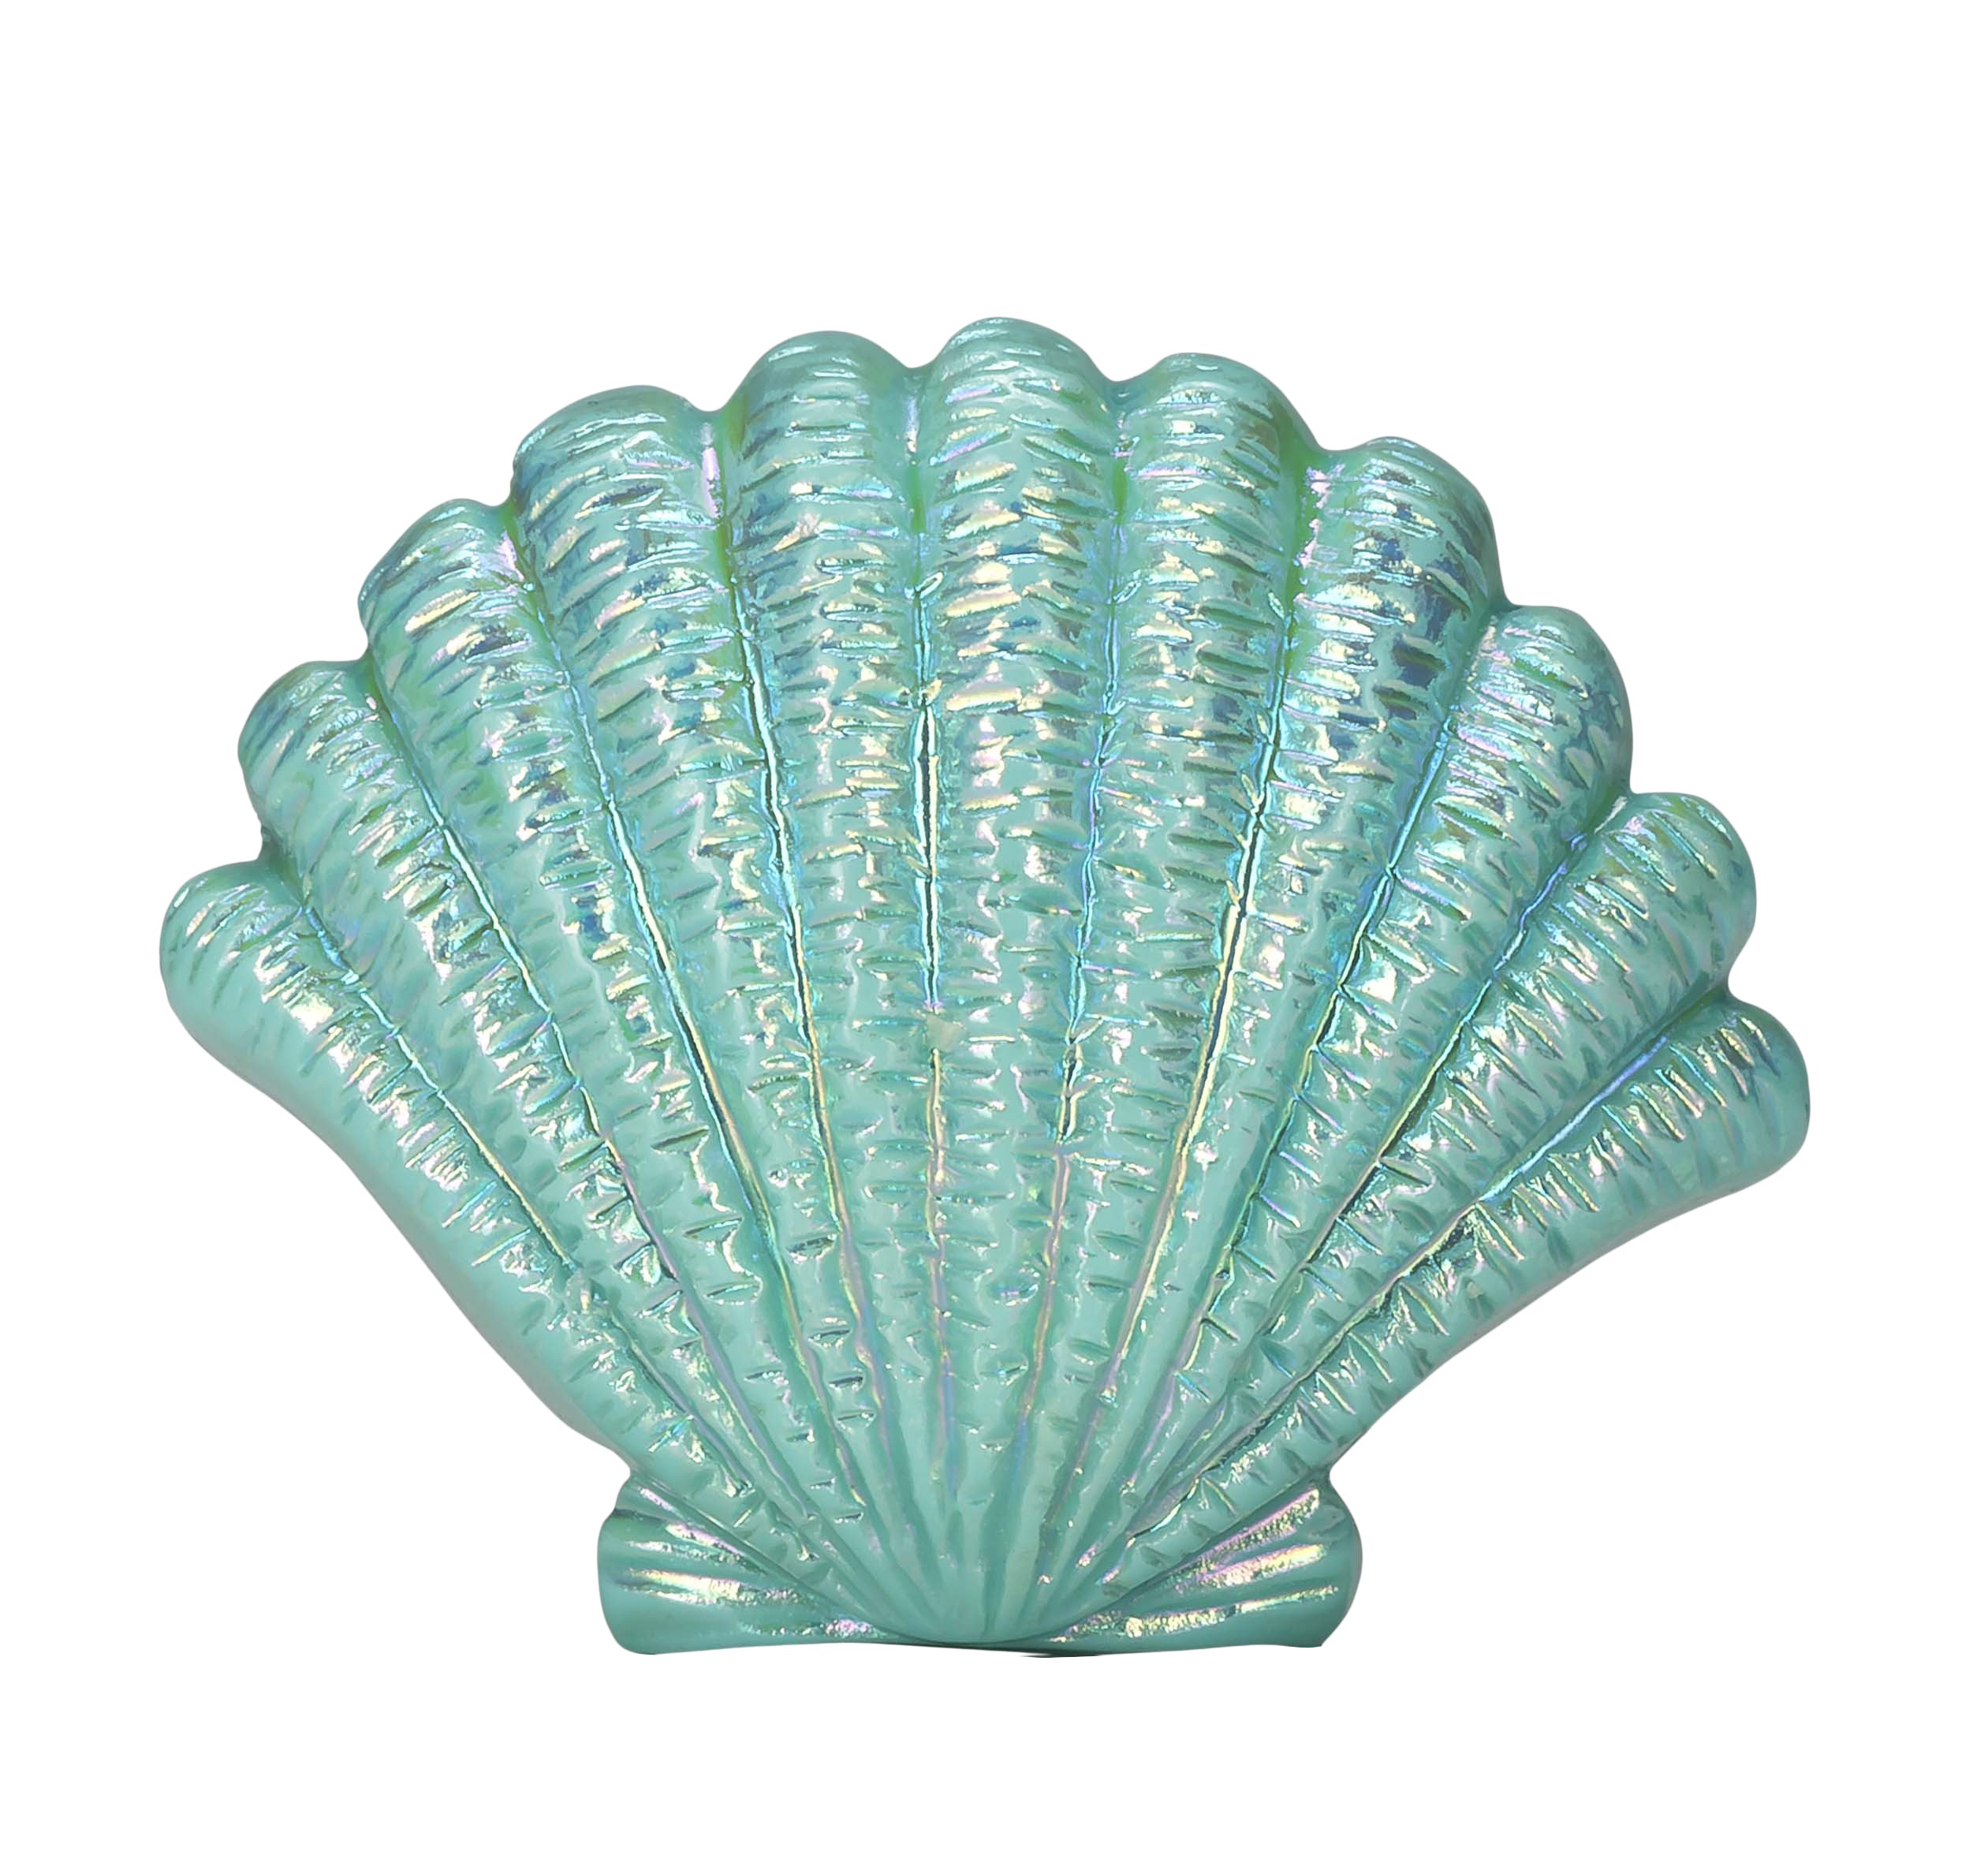 blue seashell png image purepng free transparent cc0 snail clip art transparent snail clip art free black and white